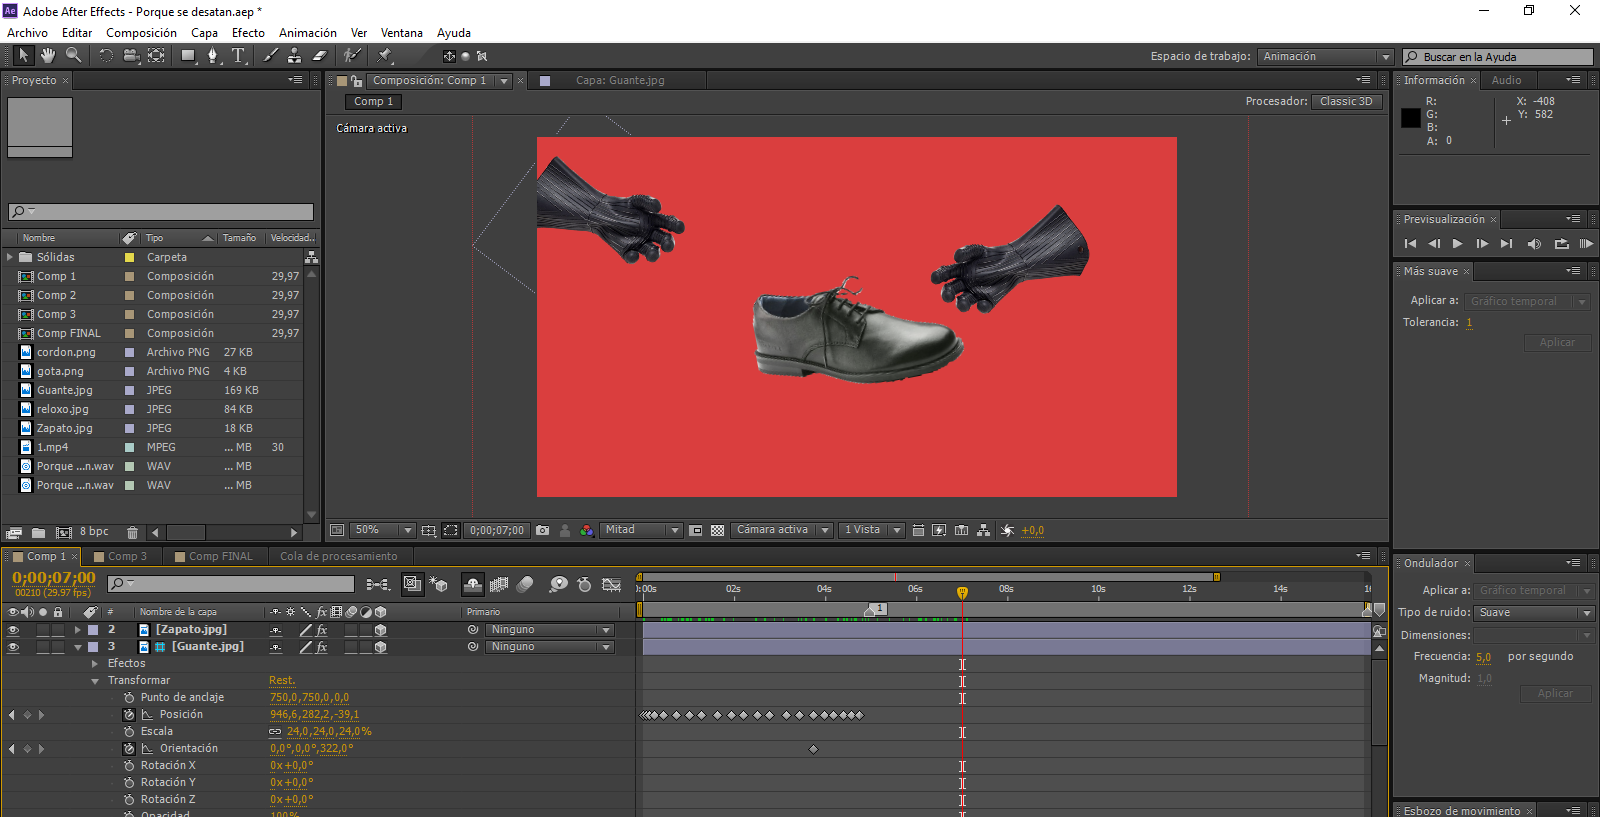 Adobe After Effects - Porque se desatan.aep _ 23_01_2020 23_55_03.png